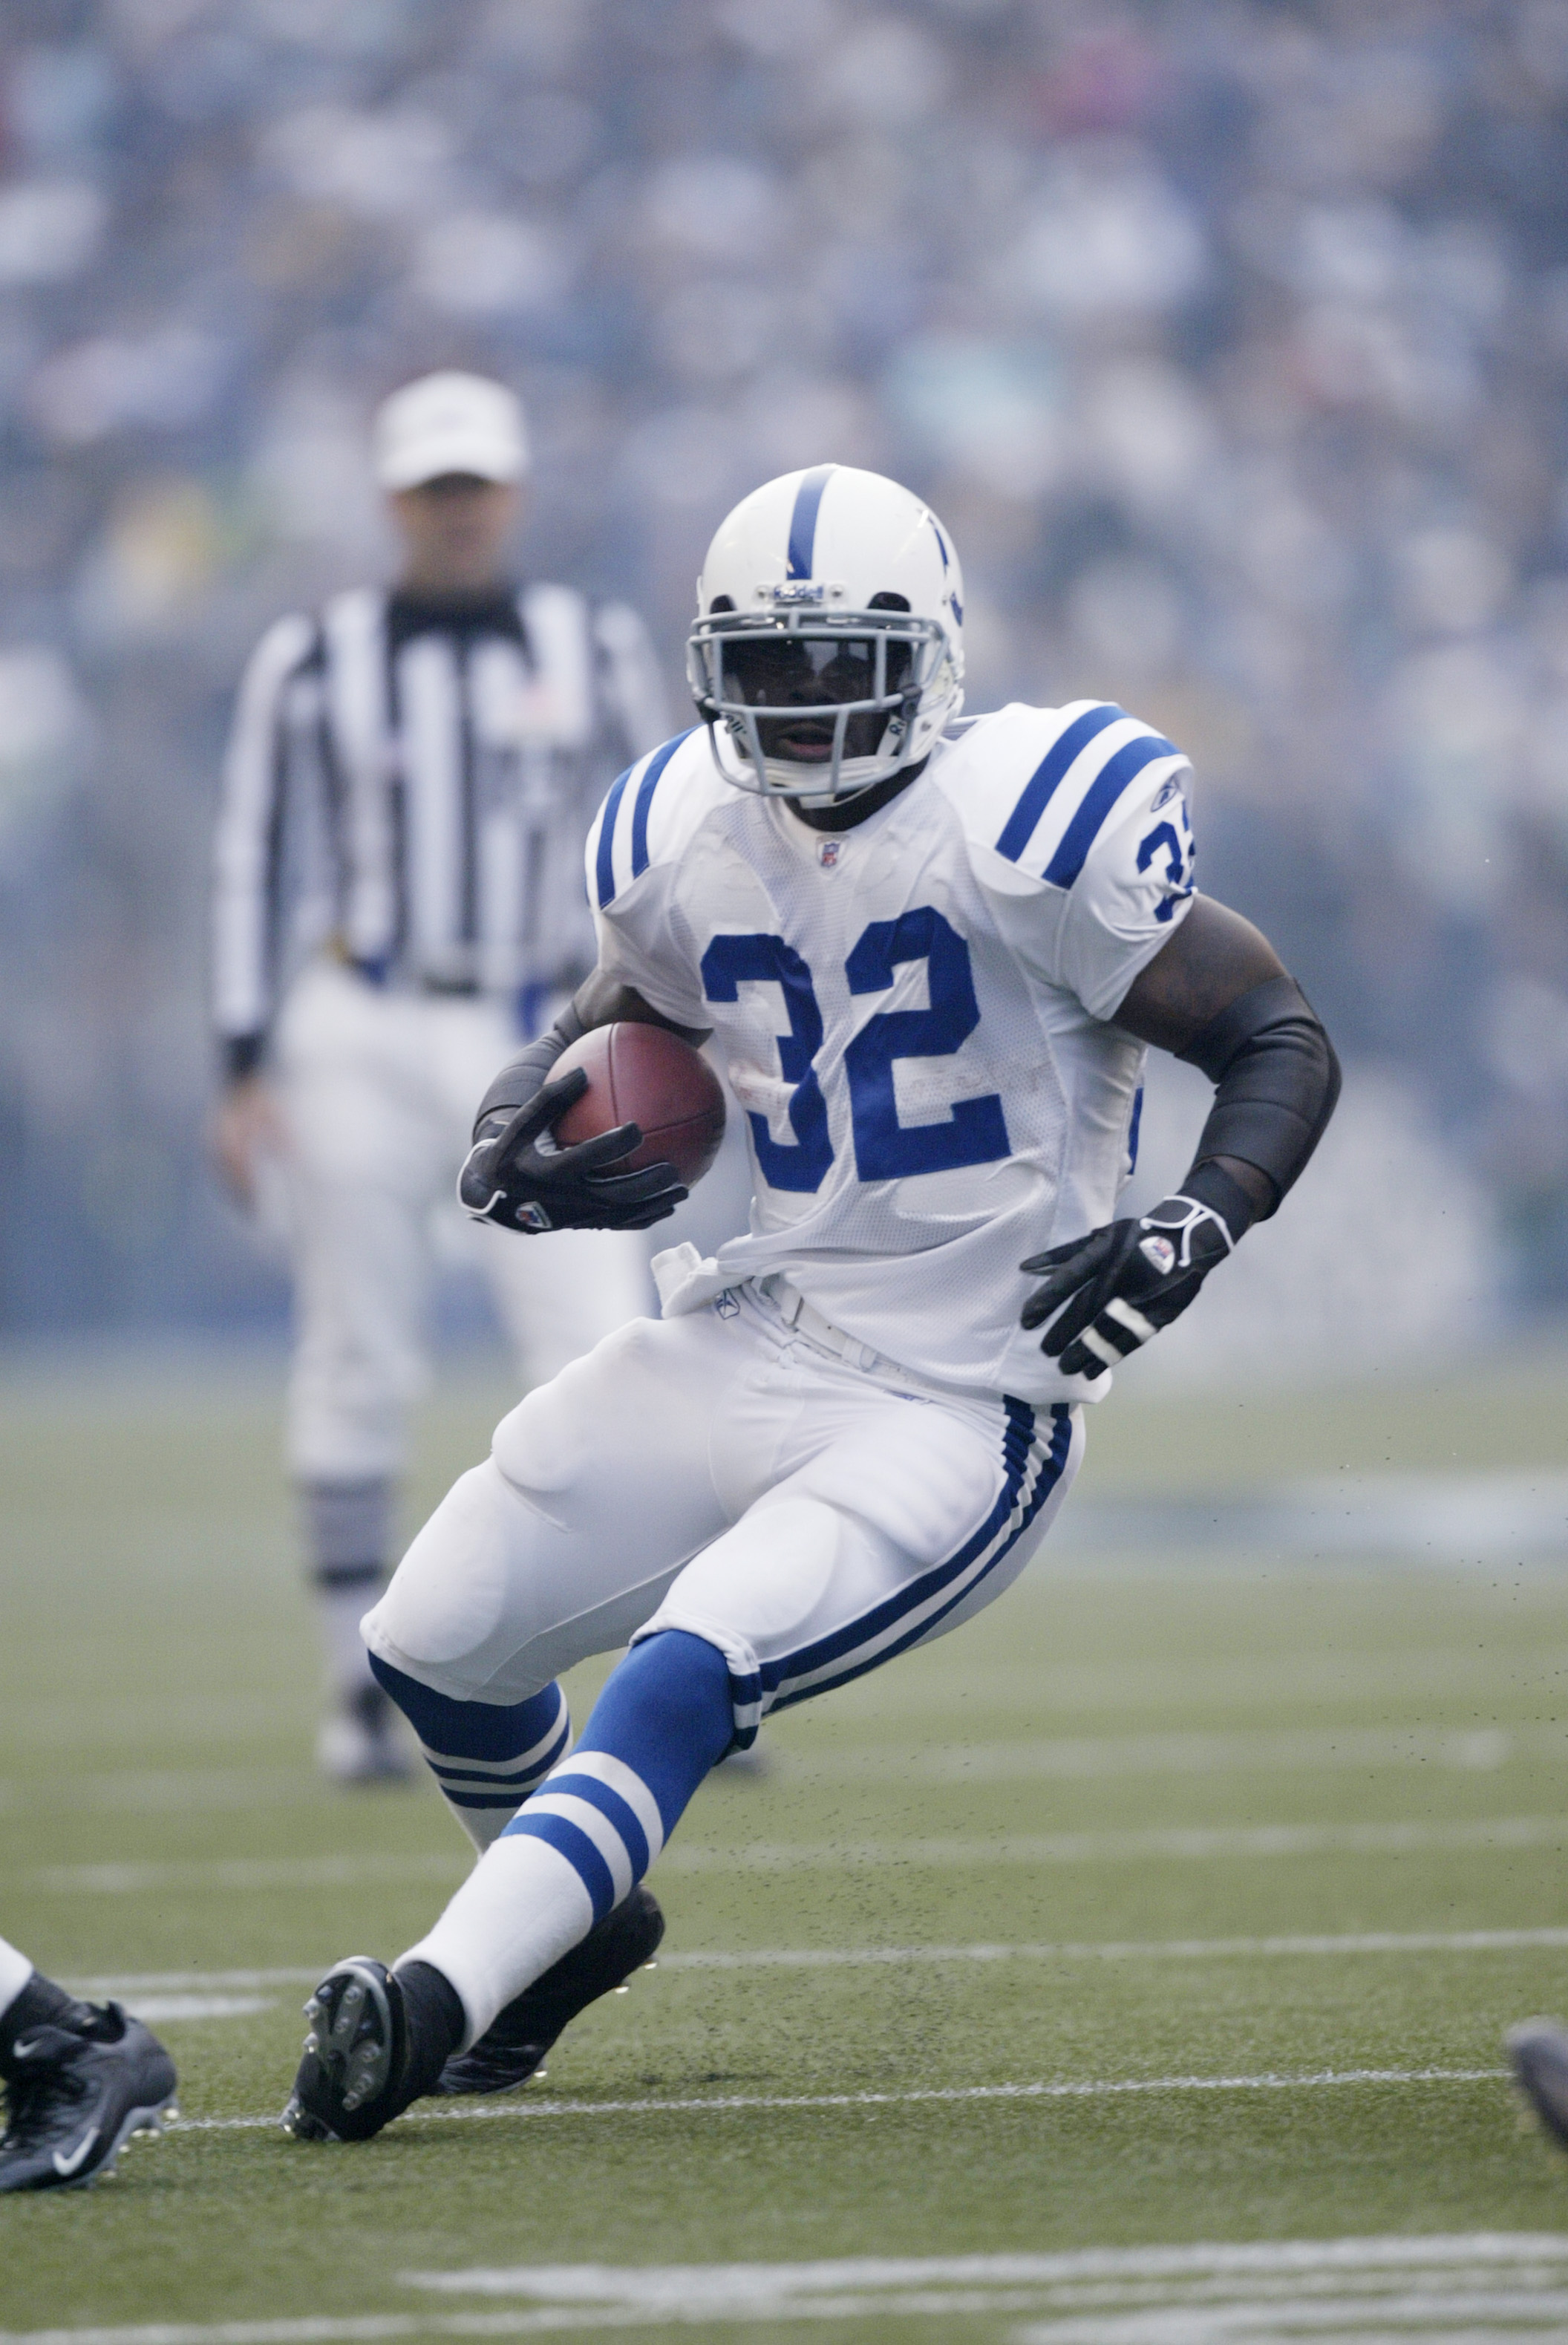 SEATTLE - DECEMBER 24:  Running back Edgerrin James #32 of the Indianapolis Colts carries the ball against the Seattle Seahawks at Qwest Field on December 24, 2005 in Seattle, Washington. The Seahawks defeated the Colts 28-13.  (Photo by Otto Greule Jr/Ge